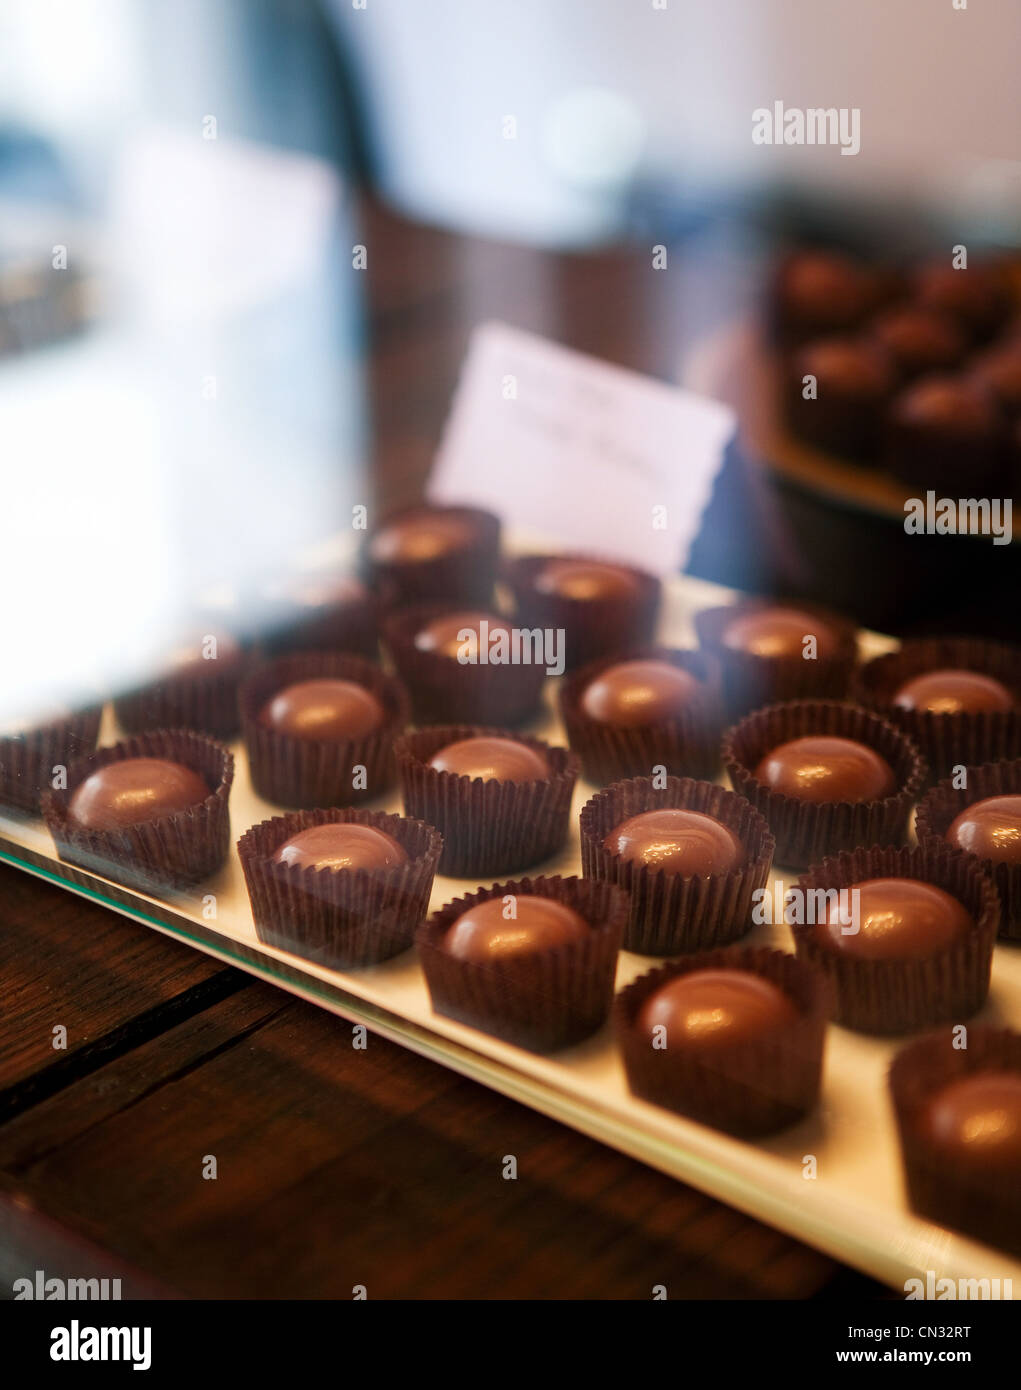 Chocolates in display case - Stock Image